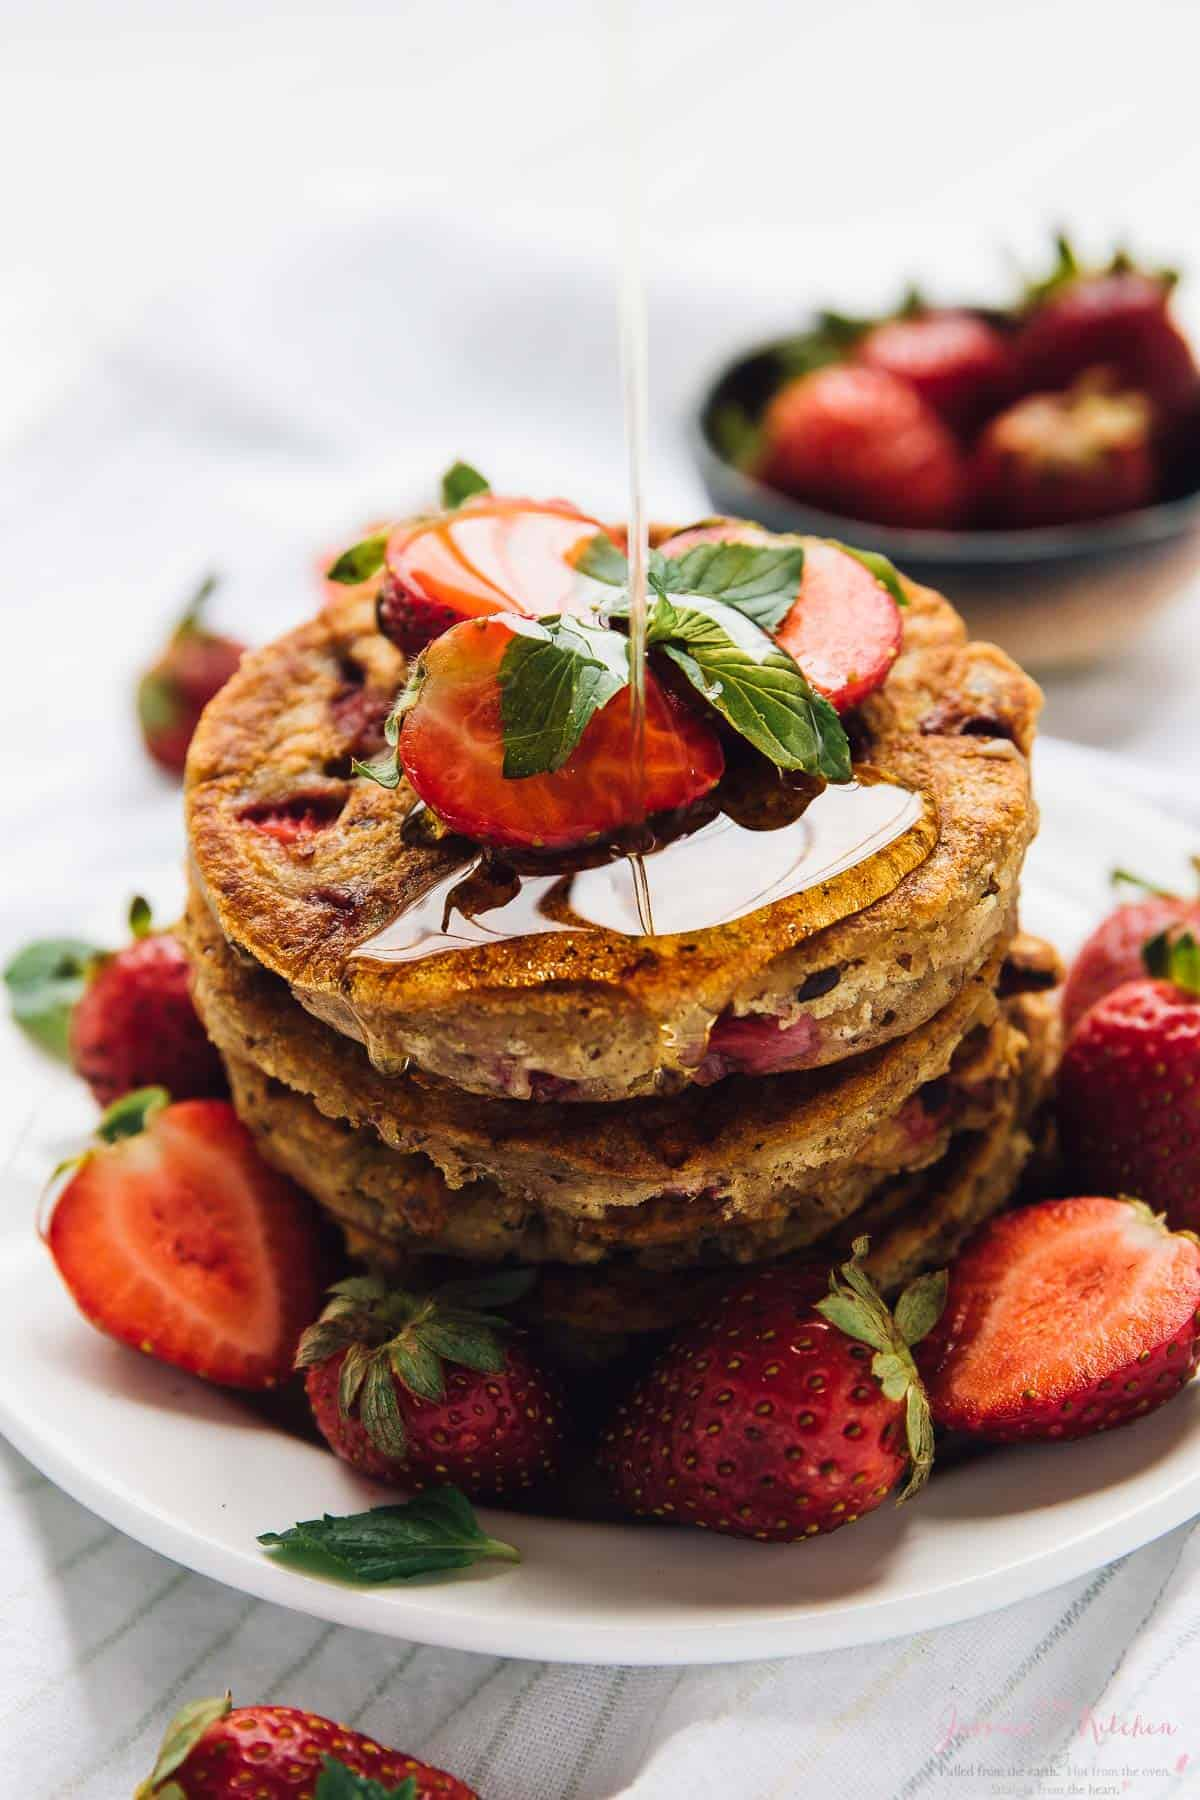 A pile of fluffy vegan strawberry pancakes drizzled with syrup.